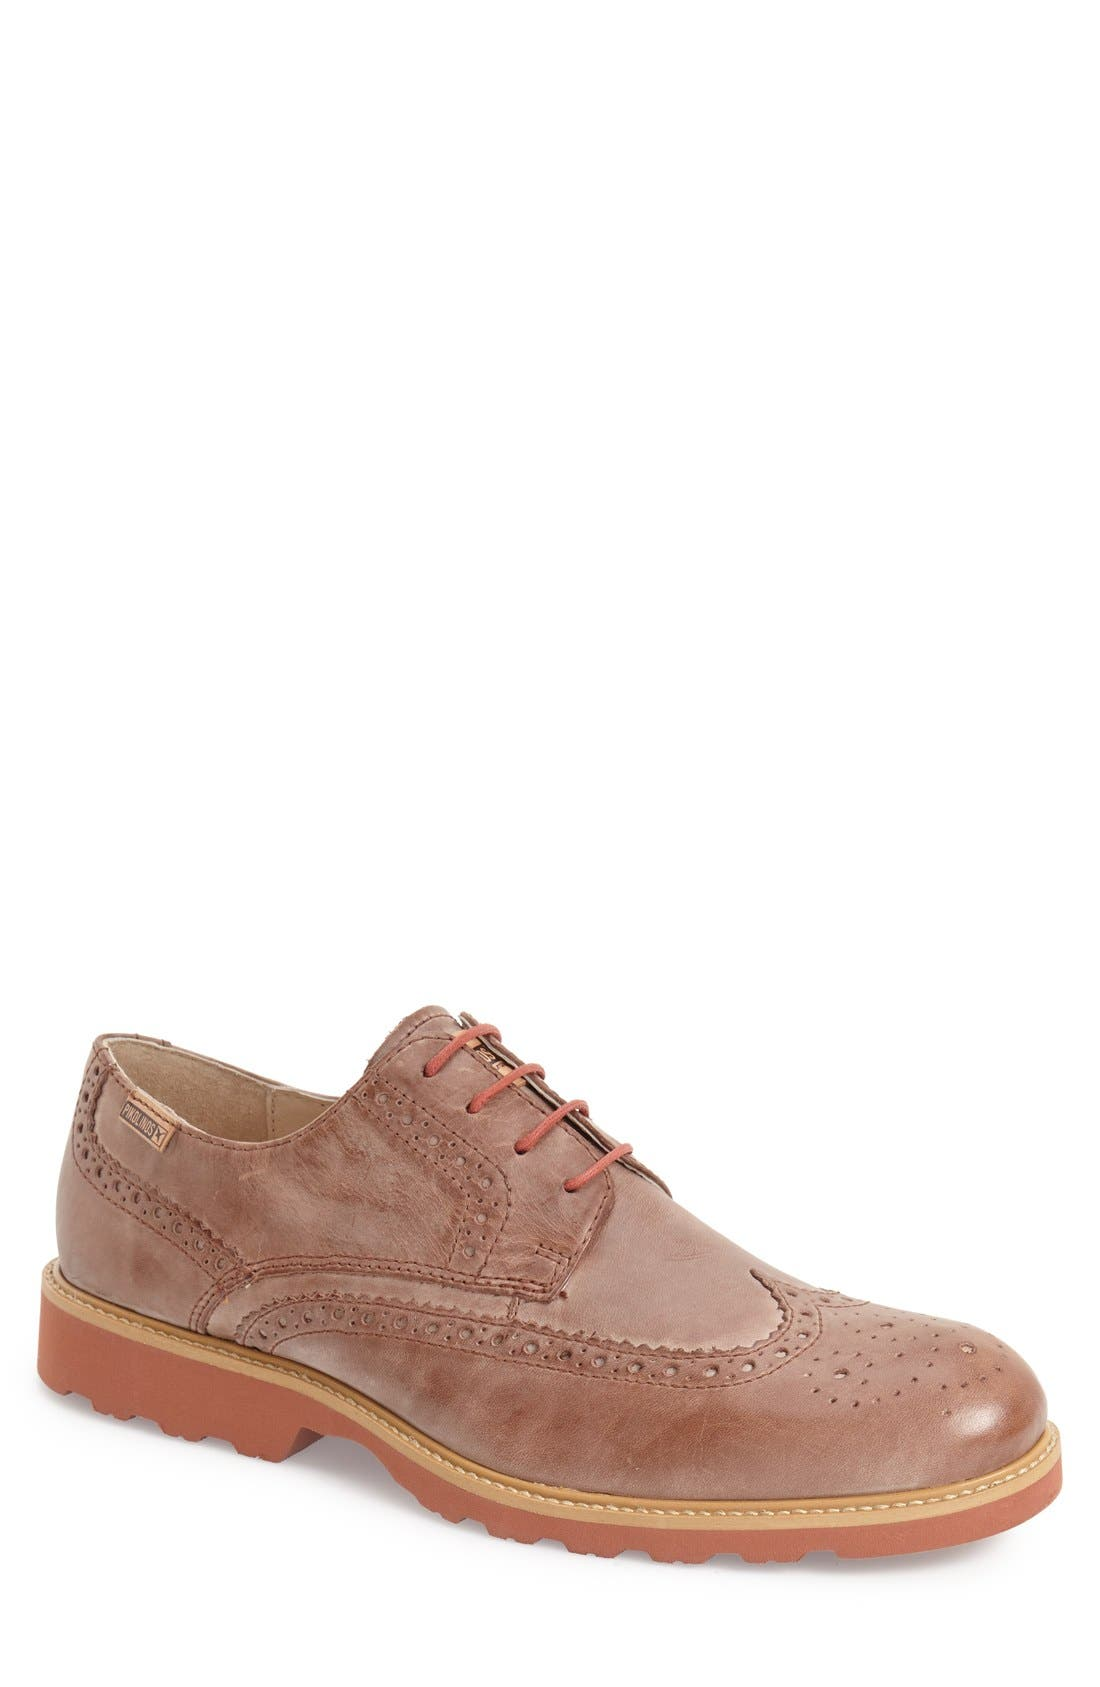 Alternate Image 1 Selected - PIKOLINOS 'Glasgow' Wing Tip Oxford (Men)